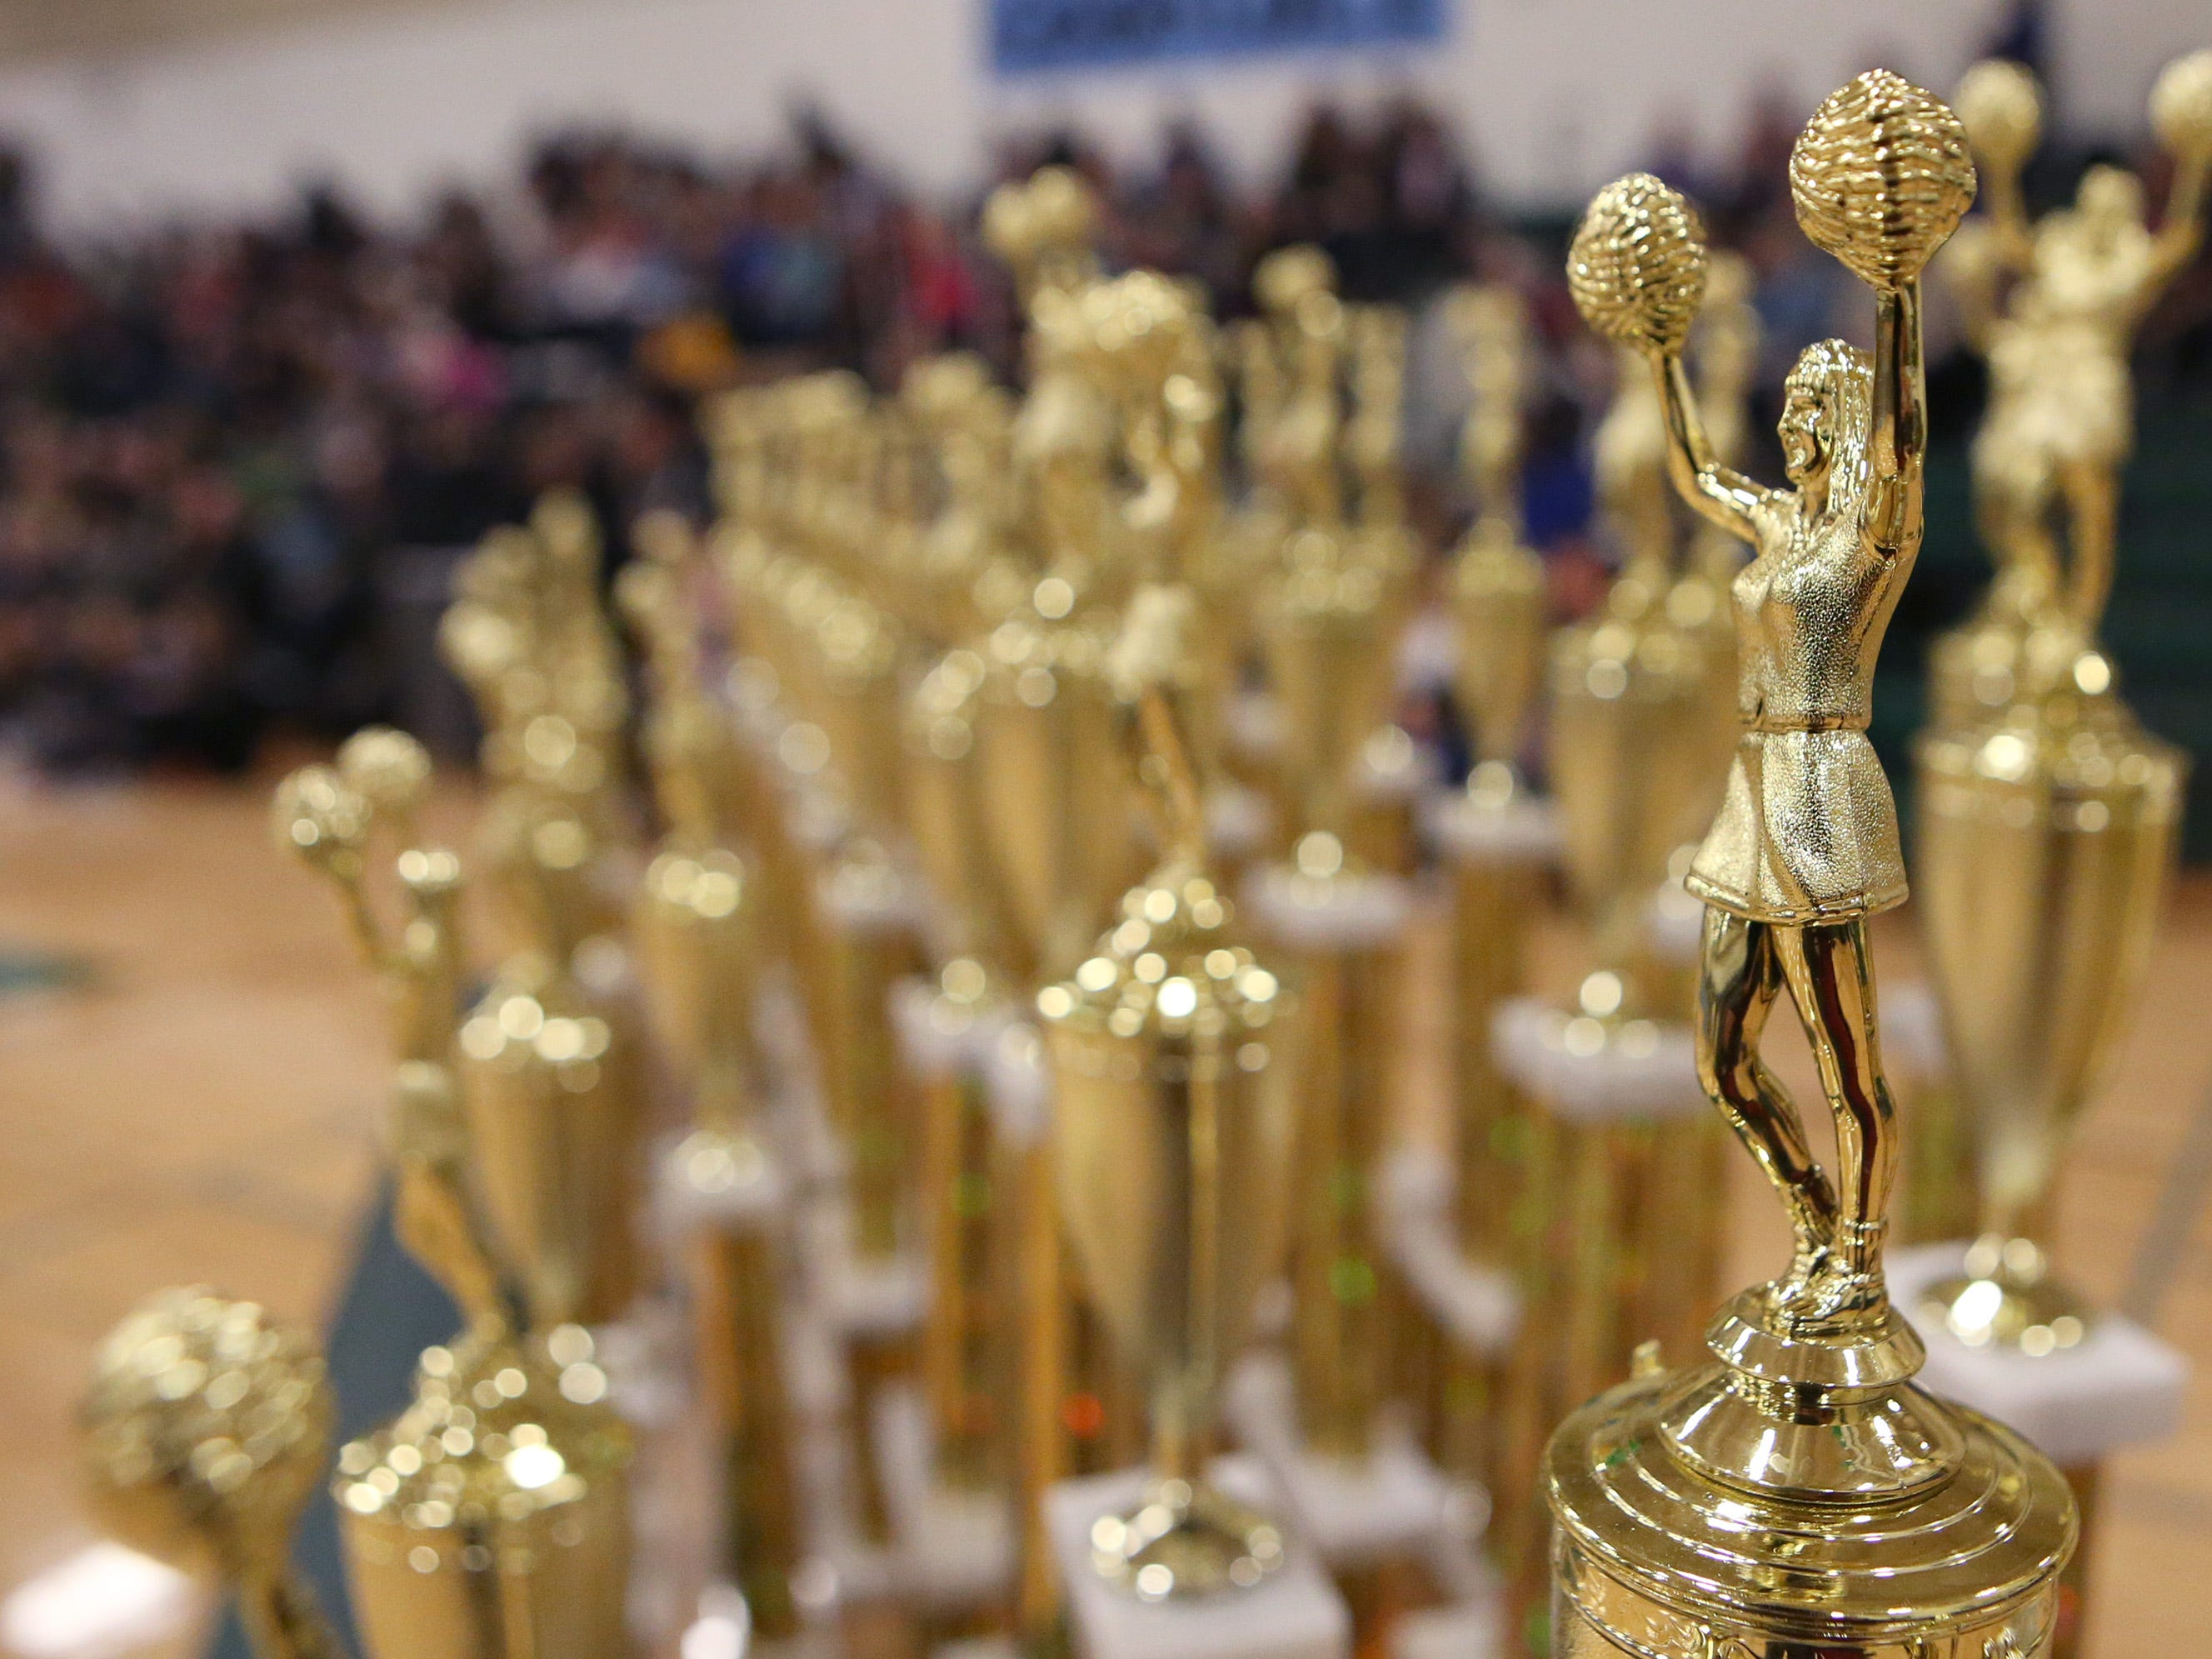 Trophies await the final results from the Greenfield Xtreme Cheer competition at Greenfield High School on Jan. 12 that drew 56 teams competing in 13 divisions.